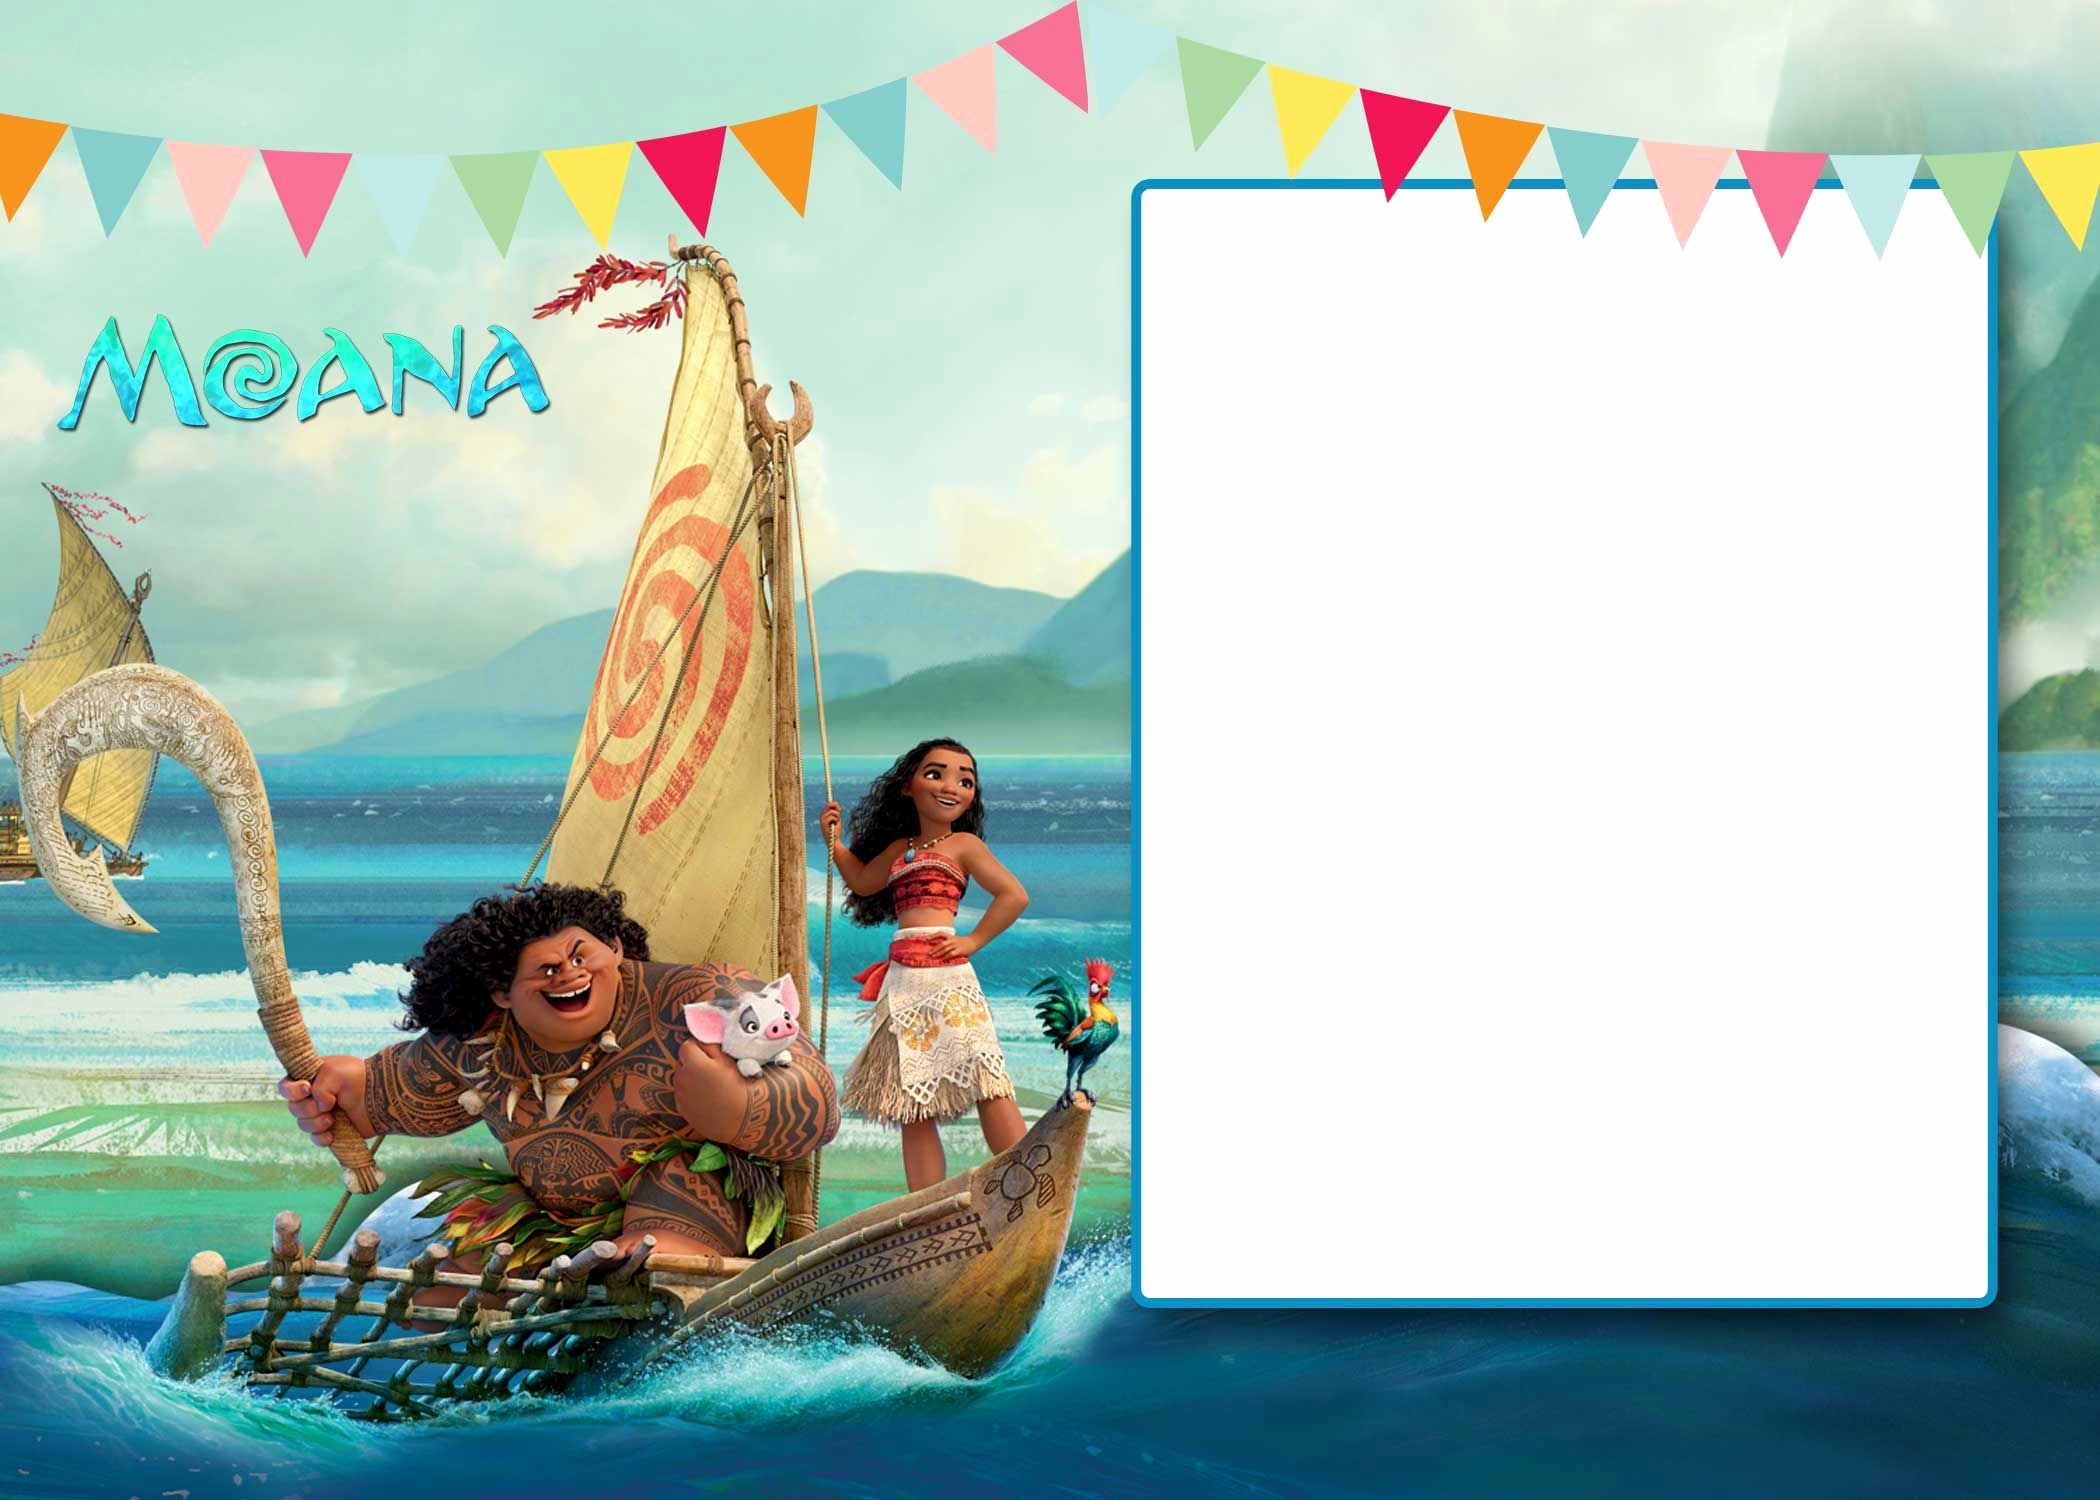 Free Moana Invitation Template Unique Download now Free Moana Baby Shower Invitation Template